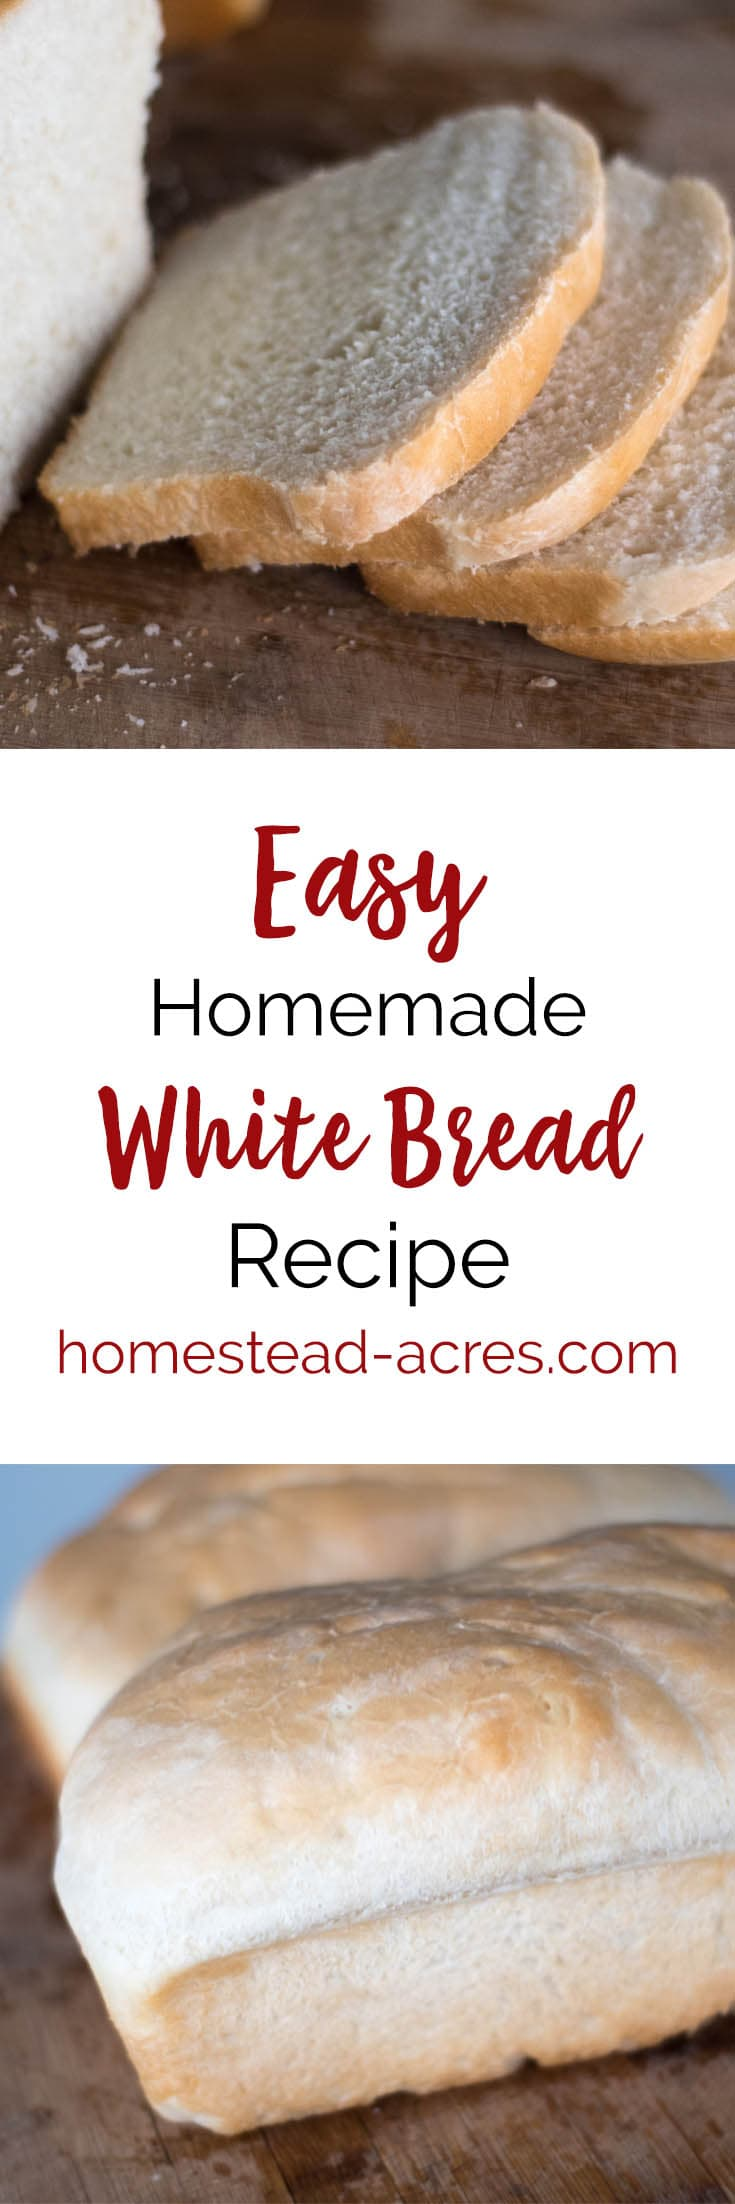 Basic White Bread Recipe. This is our family favorite homemade white bread recipe. This easy bread recipe also makes great dinner rolls and hamburger buns. #recipes #bread #breadmaking #breadrecipe